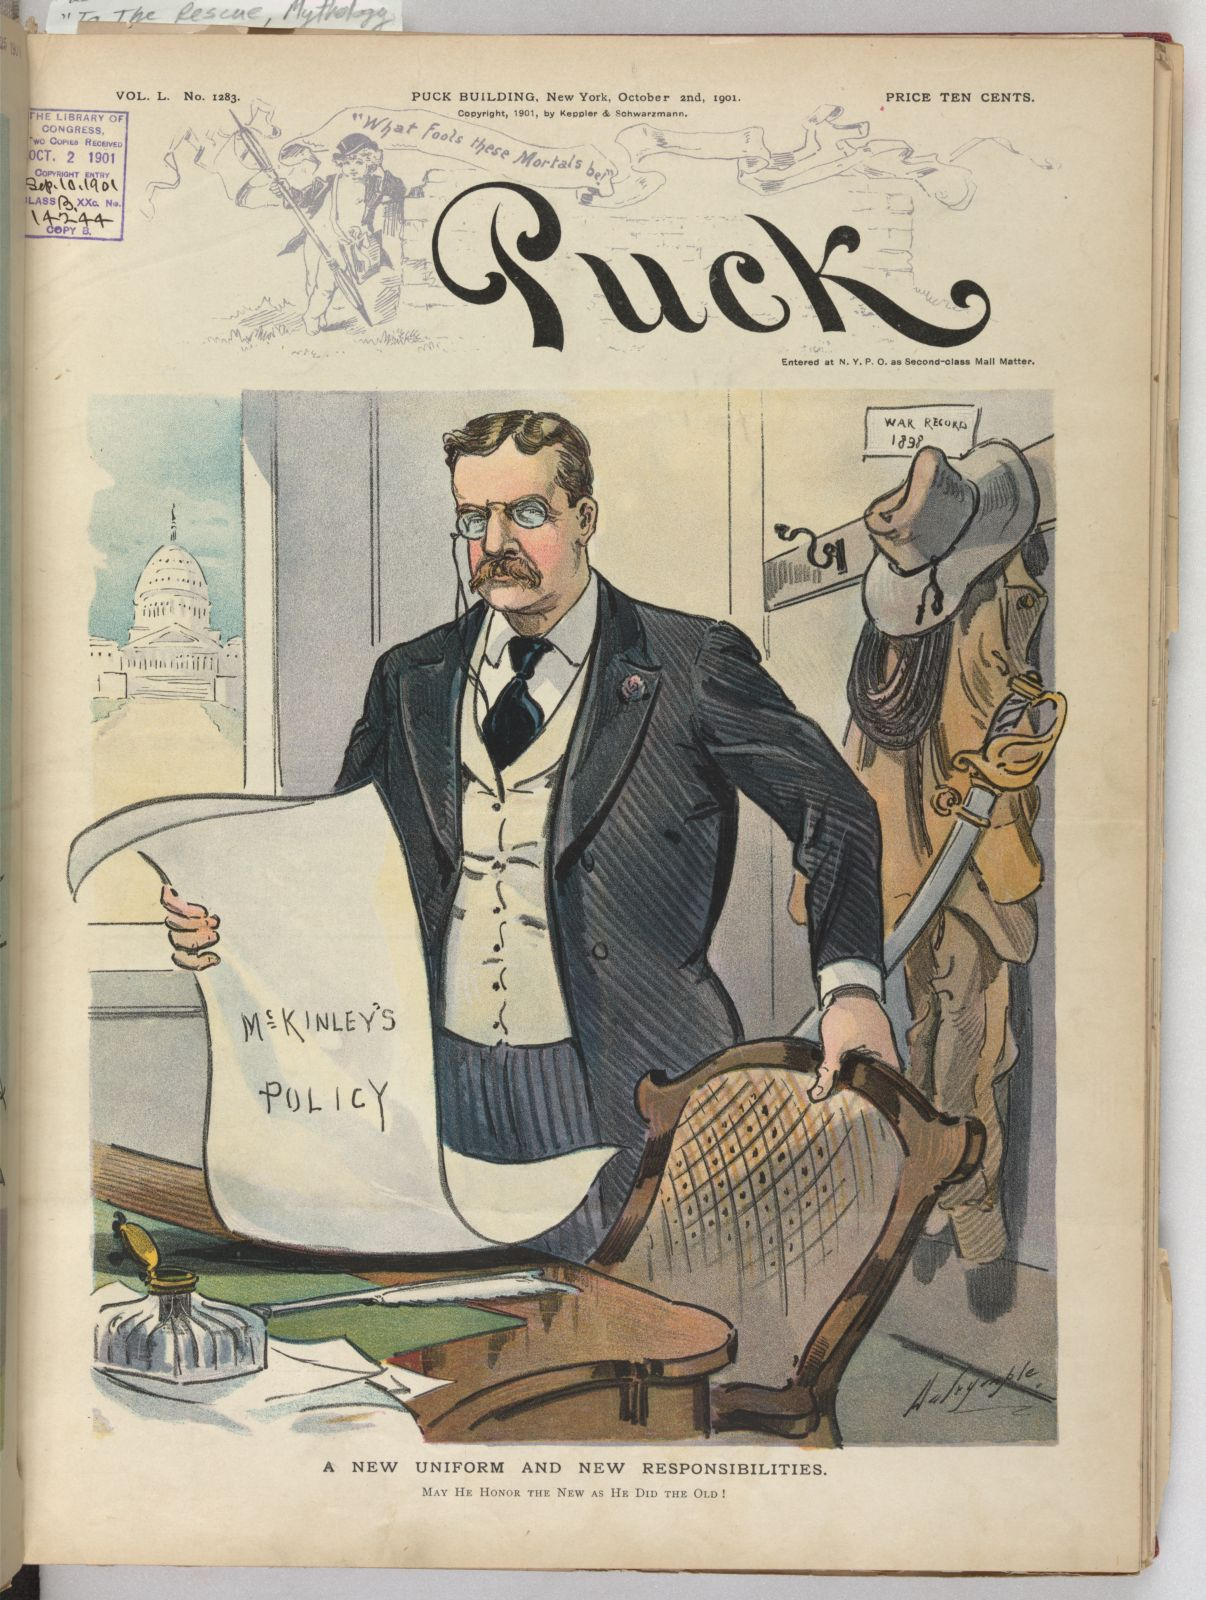 Cover from the October 2, 1901 edition of Puck as Theodore Roosevelt took over the duties of President after the assassination of President William McKinley. From the Library of Congress Prints and Photographs division.